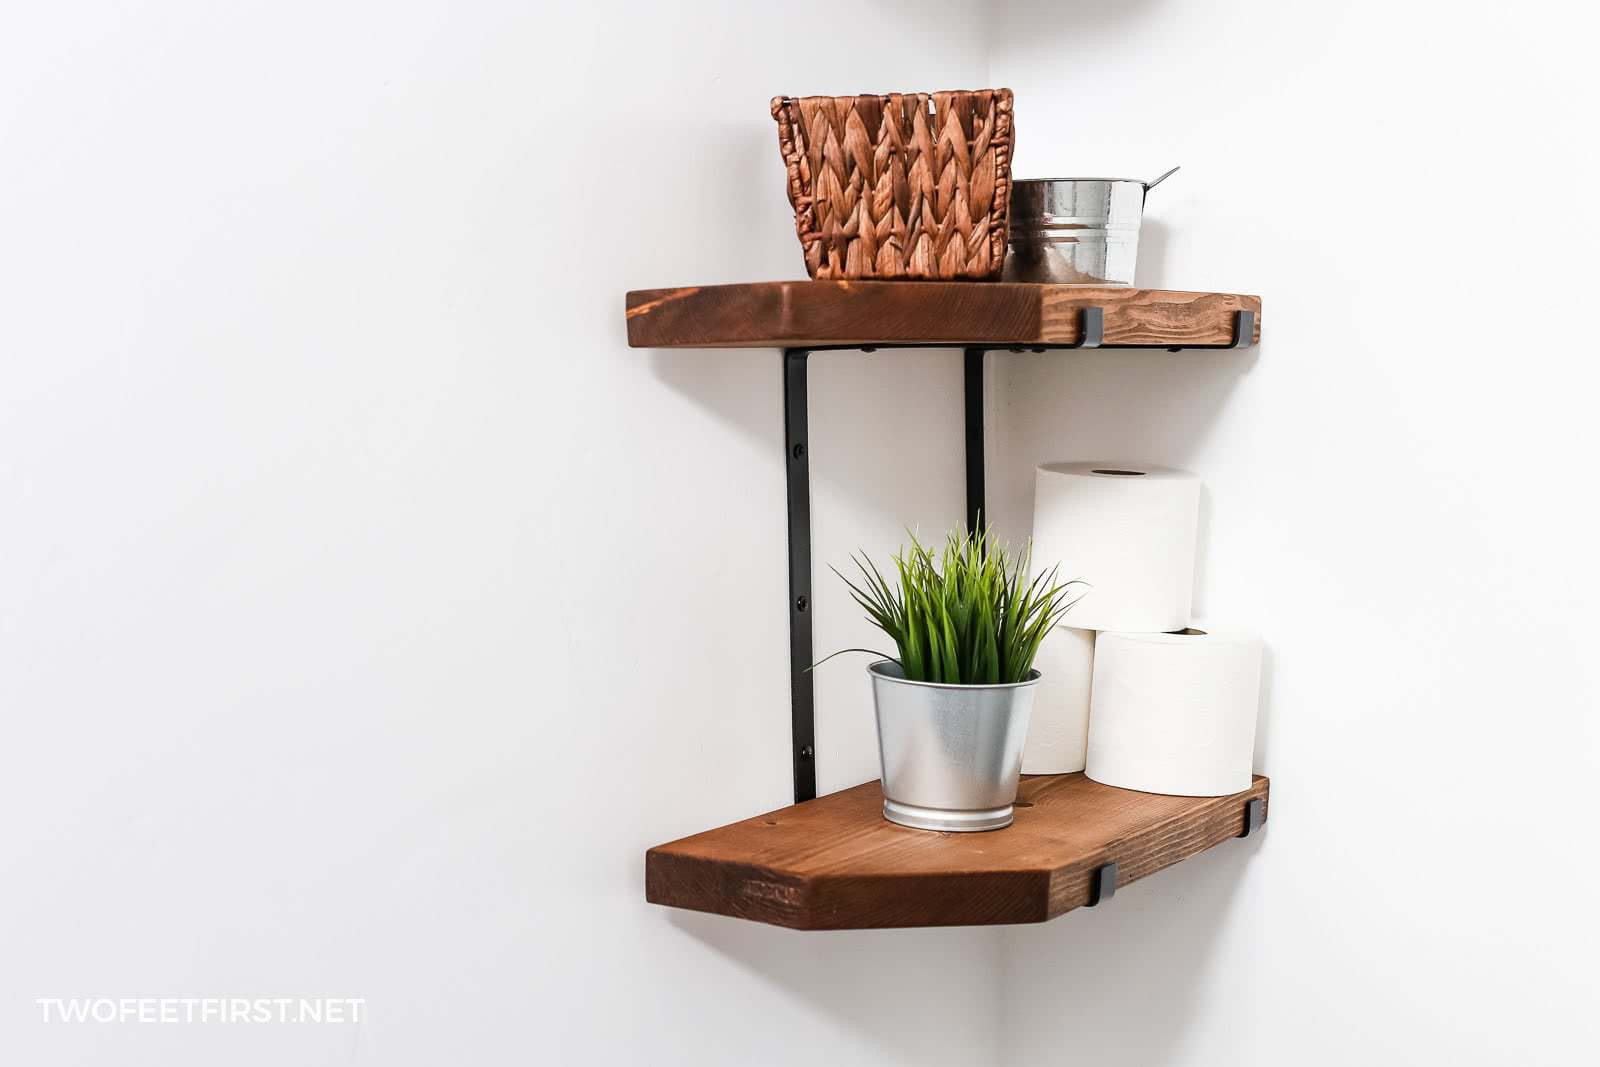 DIY custom farmhouse shelves